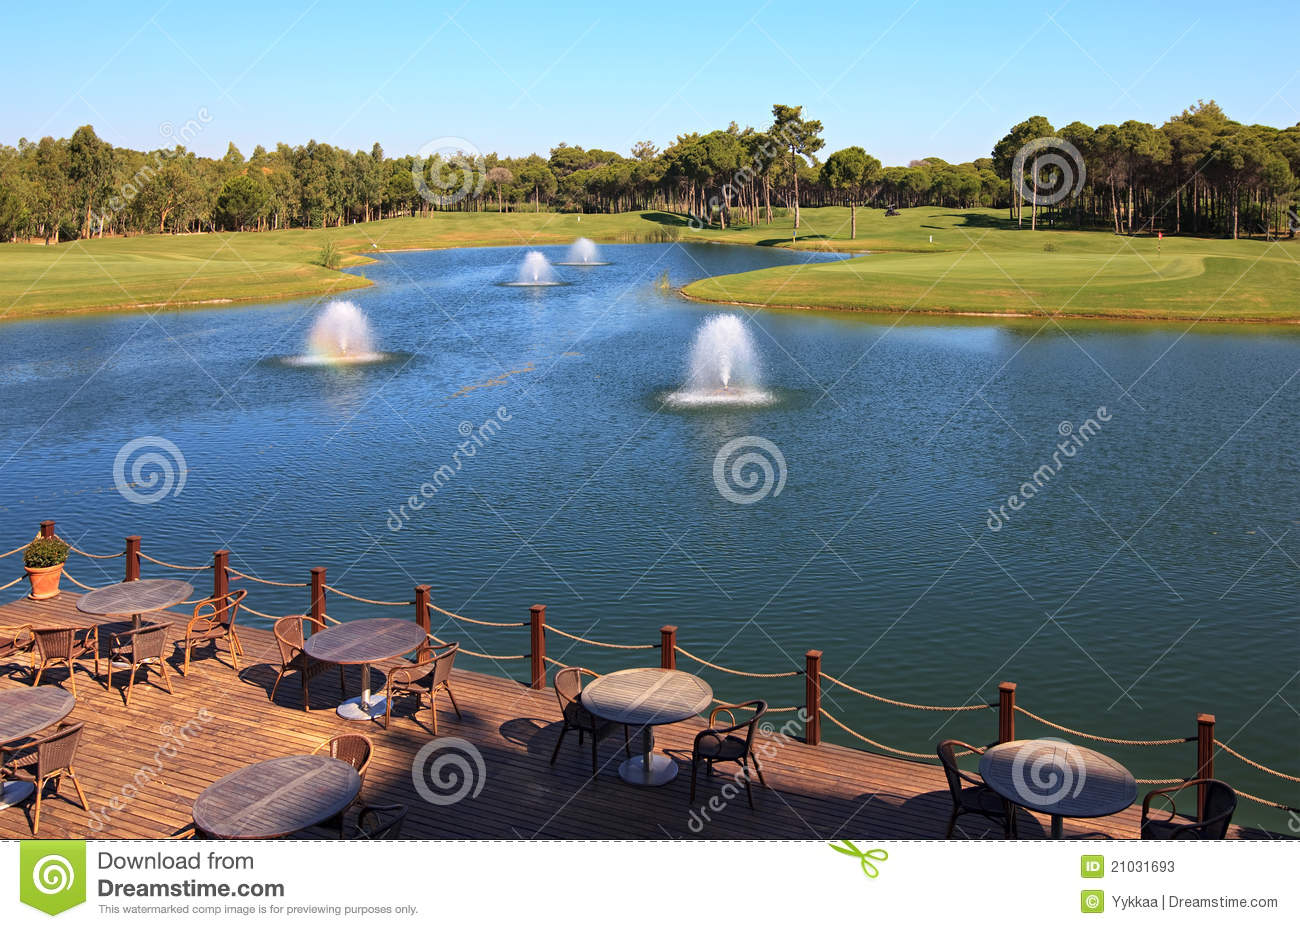 Cafe on the artificial pond stock photos image 21031693 for Artificial pond